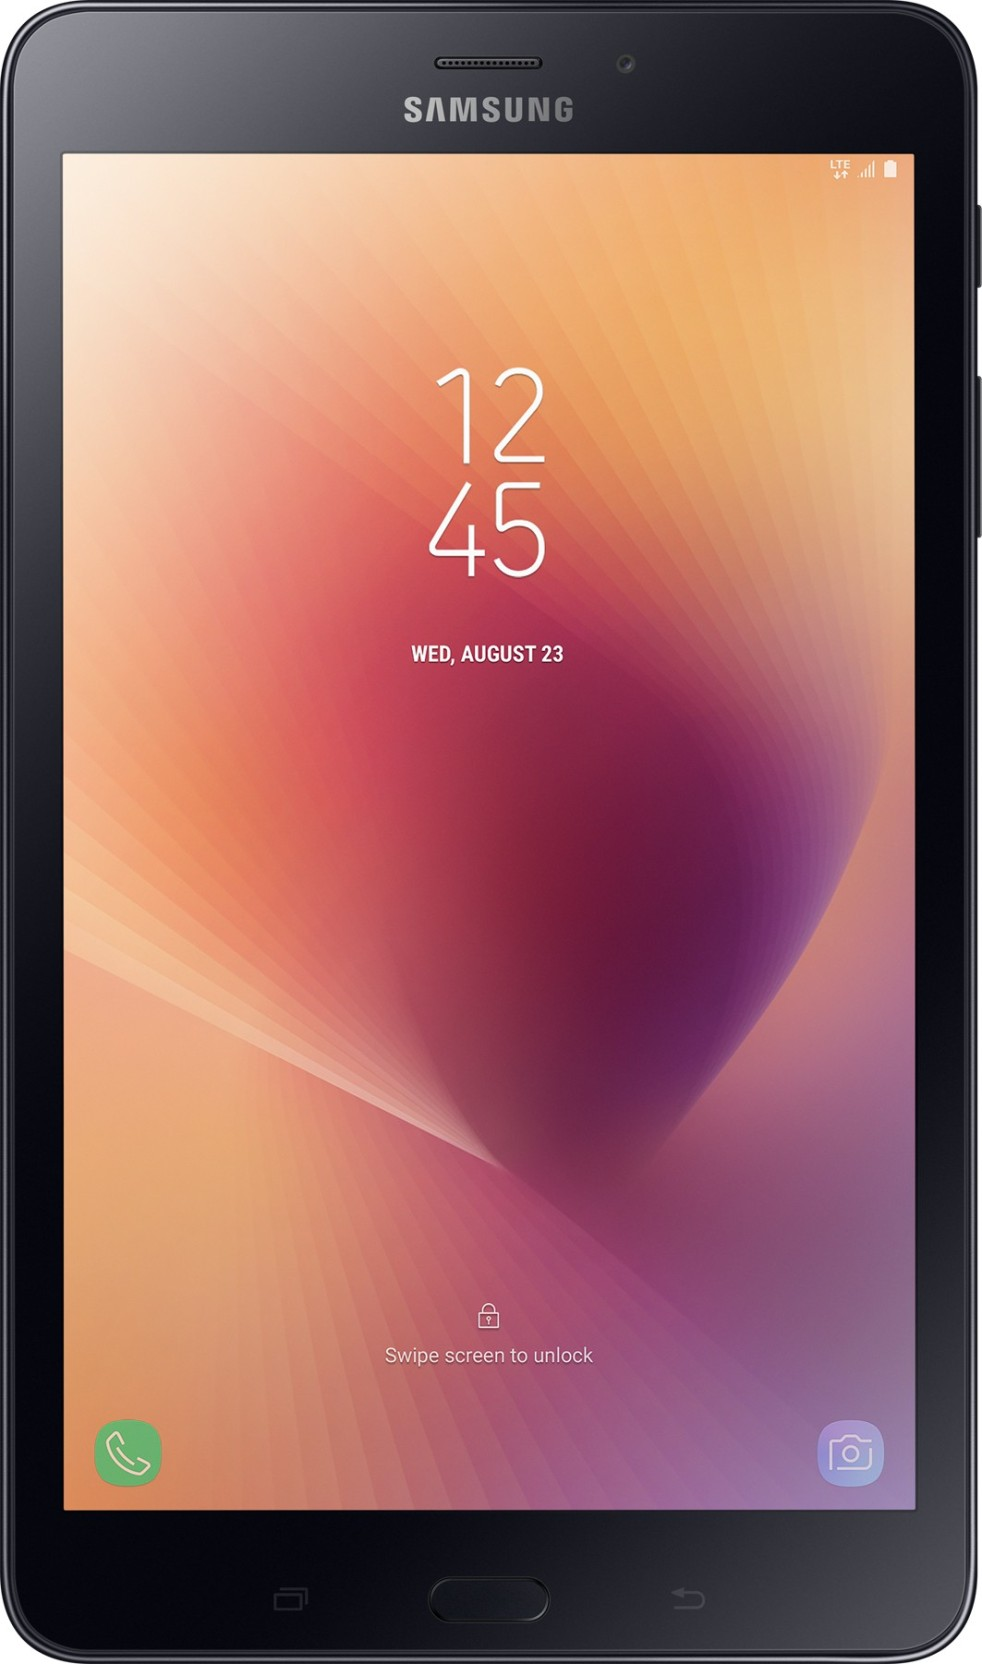 Samsung Galaxy Tab A T385 16 Gb 8 Inch With Wi Fi 4g Tablet Black Flip Case Book Cover 2017 80 Sm Add To Cart